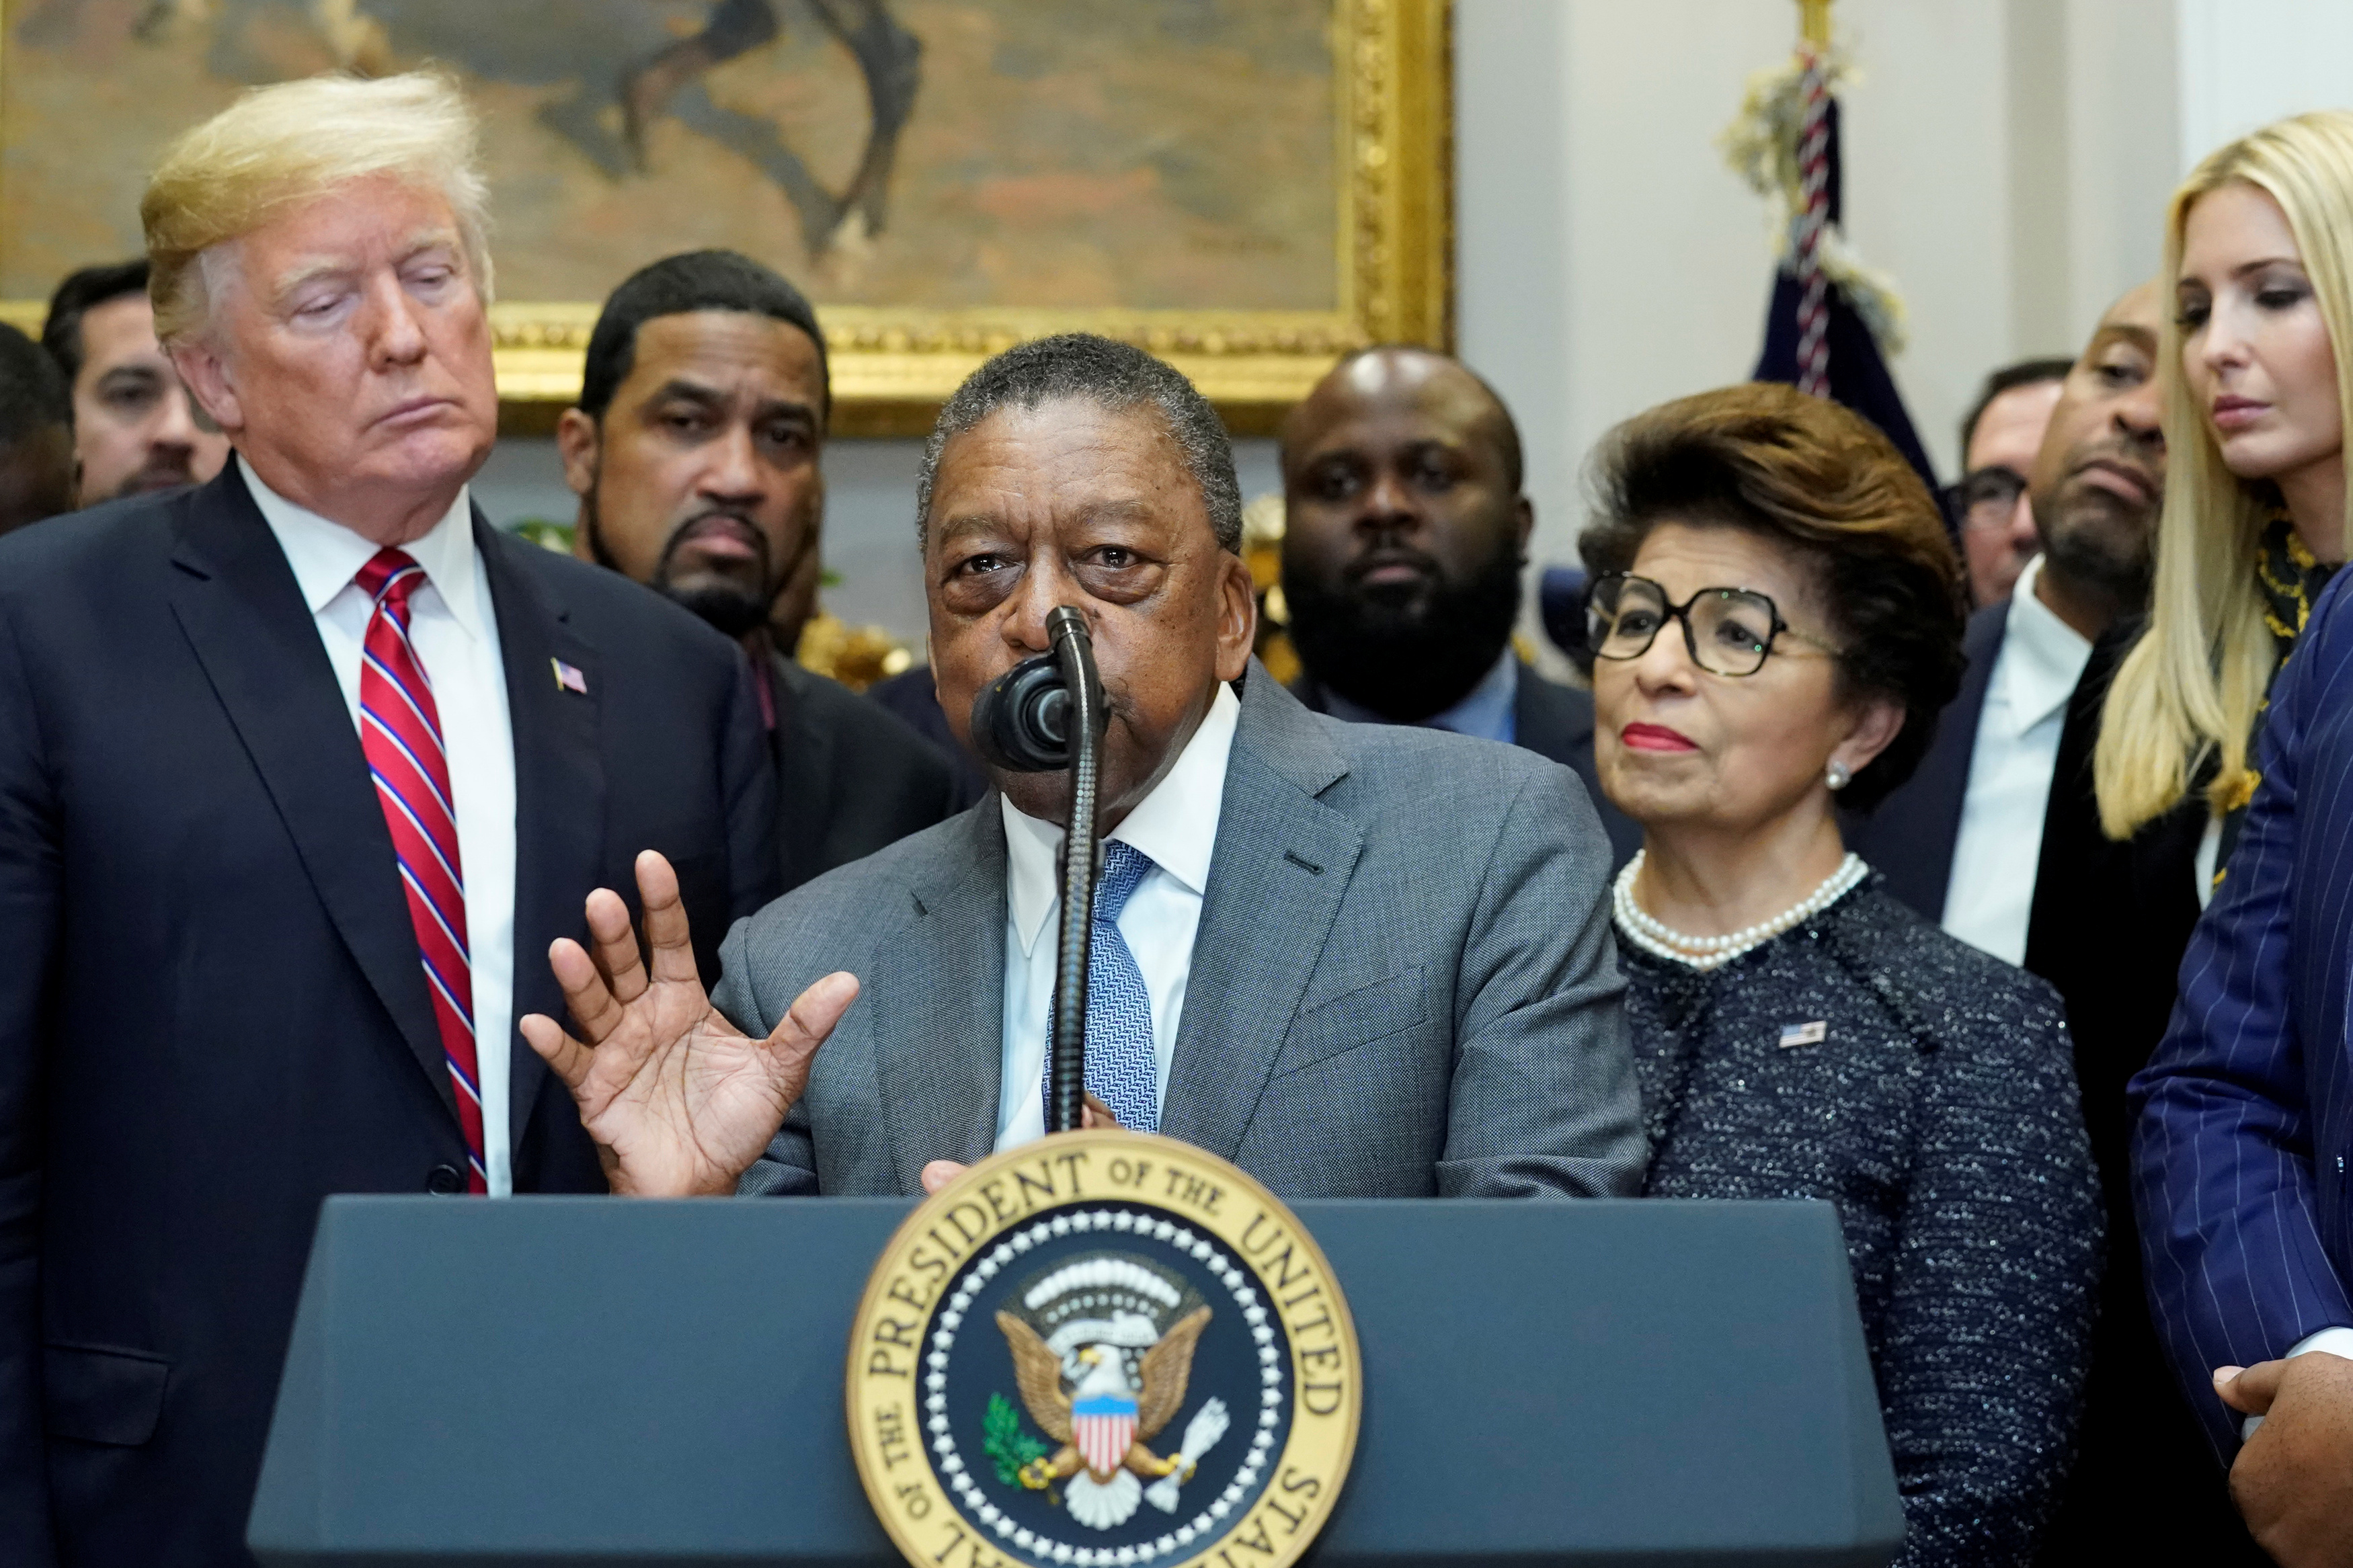 BET founder Robert Johnson, flanked by U.S. President Donald Trump, Treasurer of the U.S. Jovita Carranza and White House senior advisor Ivanka Trump, delivers remarks before Trump signs an Executive Order establishing the White House Opportunity and Revitalization Council at the White House in Washington, U.S. December 12, 2018. REUTERS/Jonathan Ernst